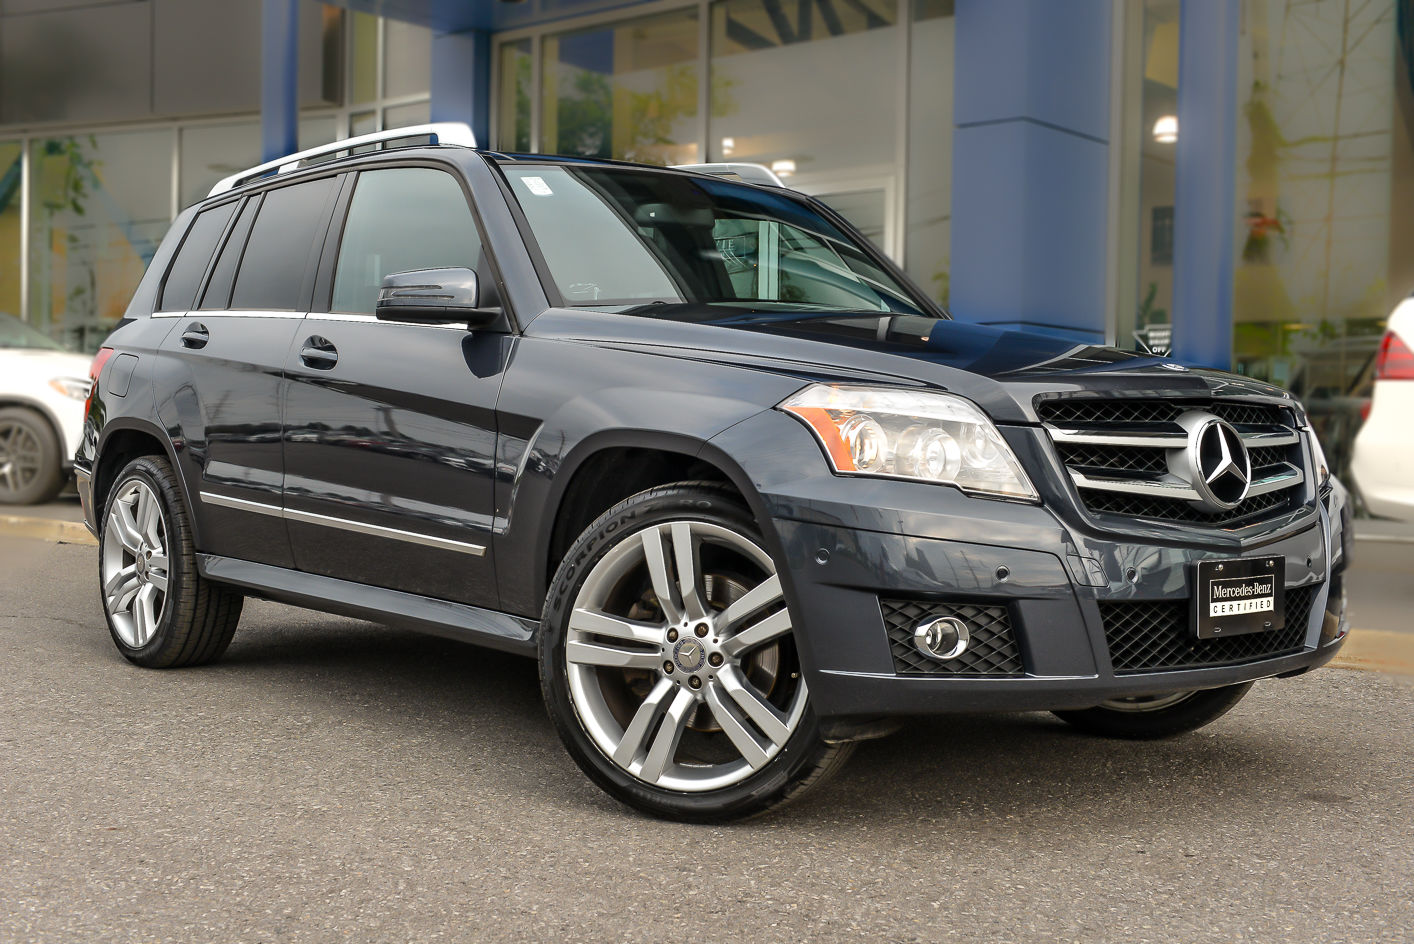 cuir mercedes used awd car at mags benz bluetooth hgregoire sale for glk